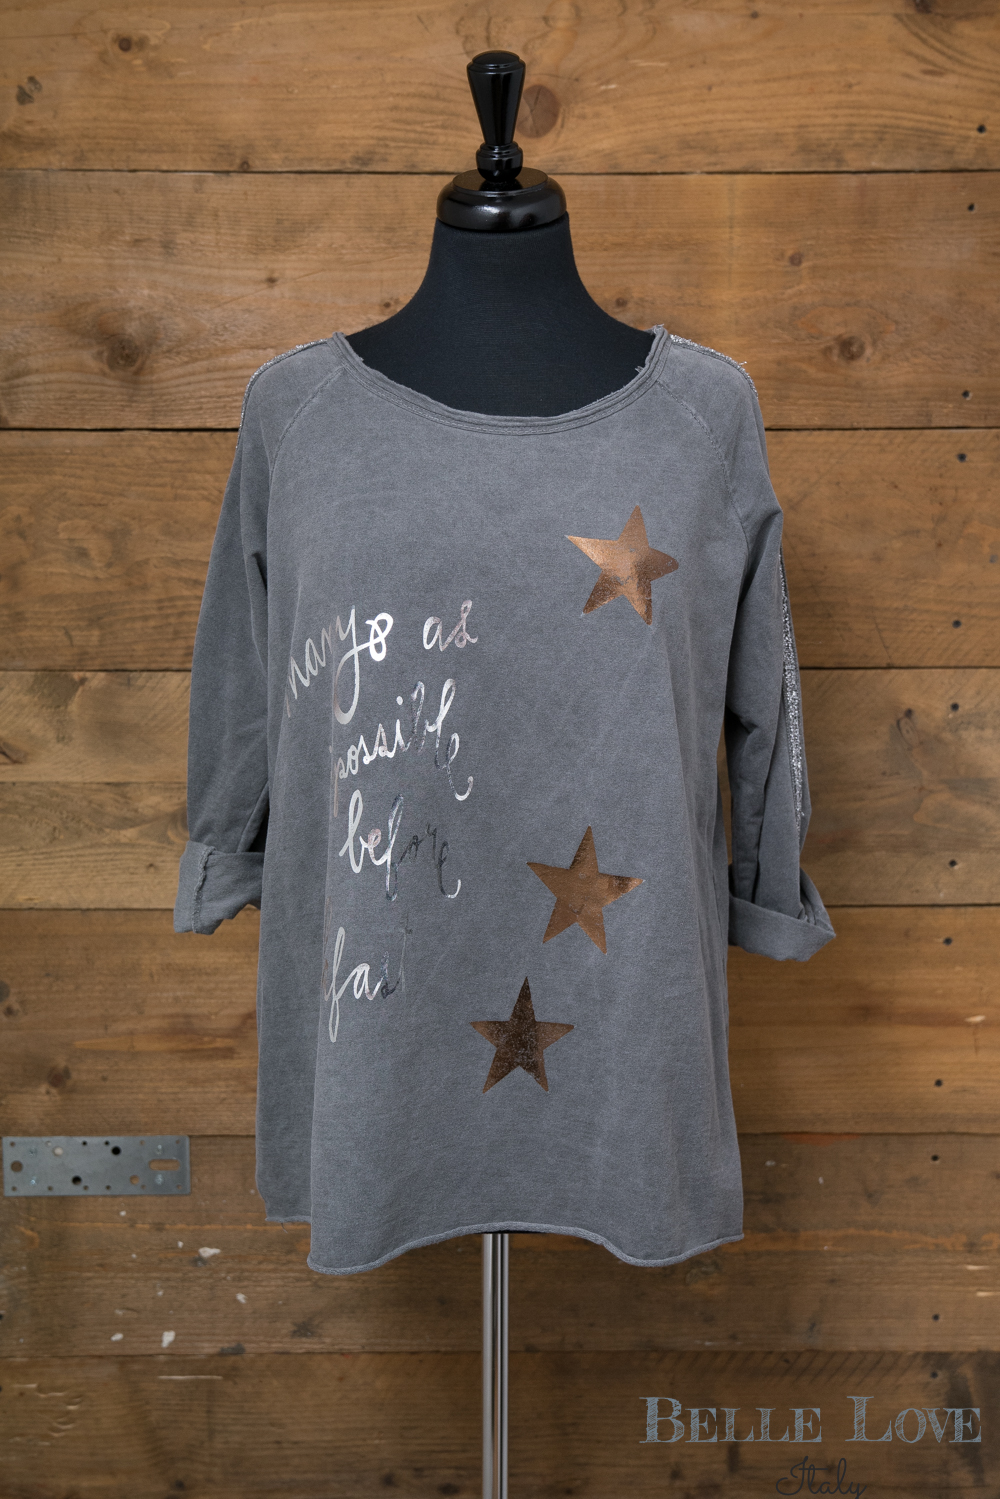 Belle Love Italy Foil Star Top